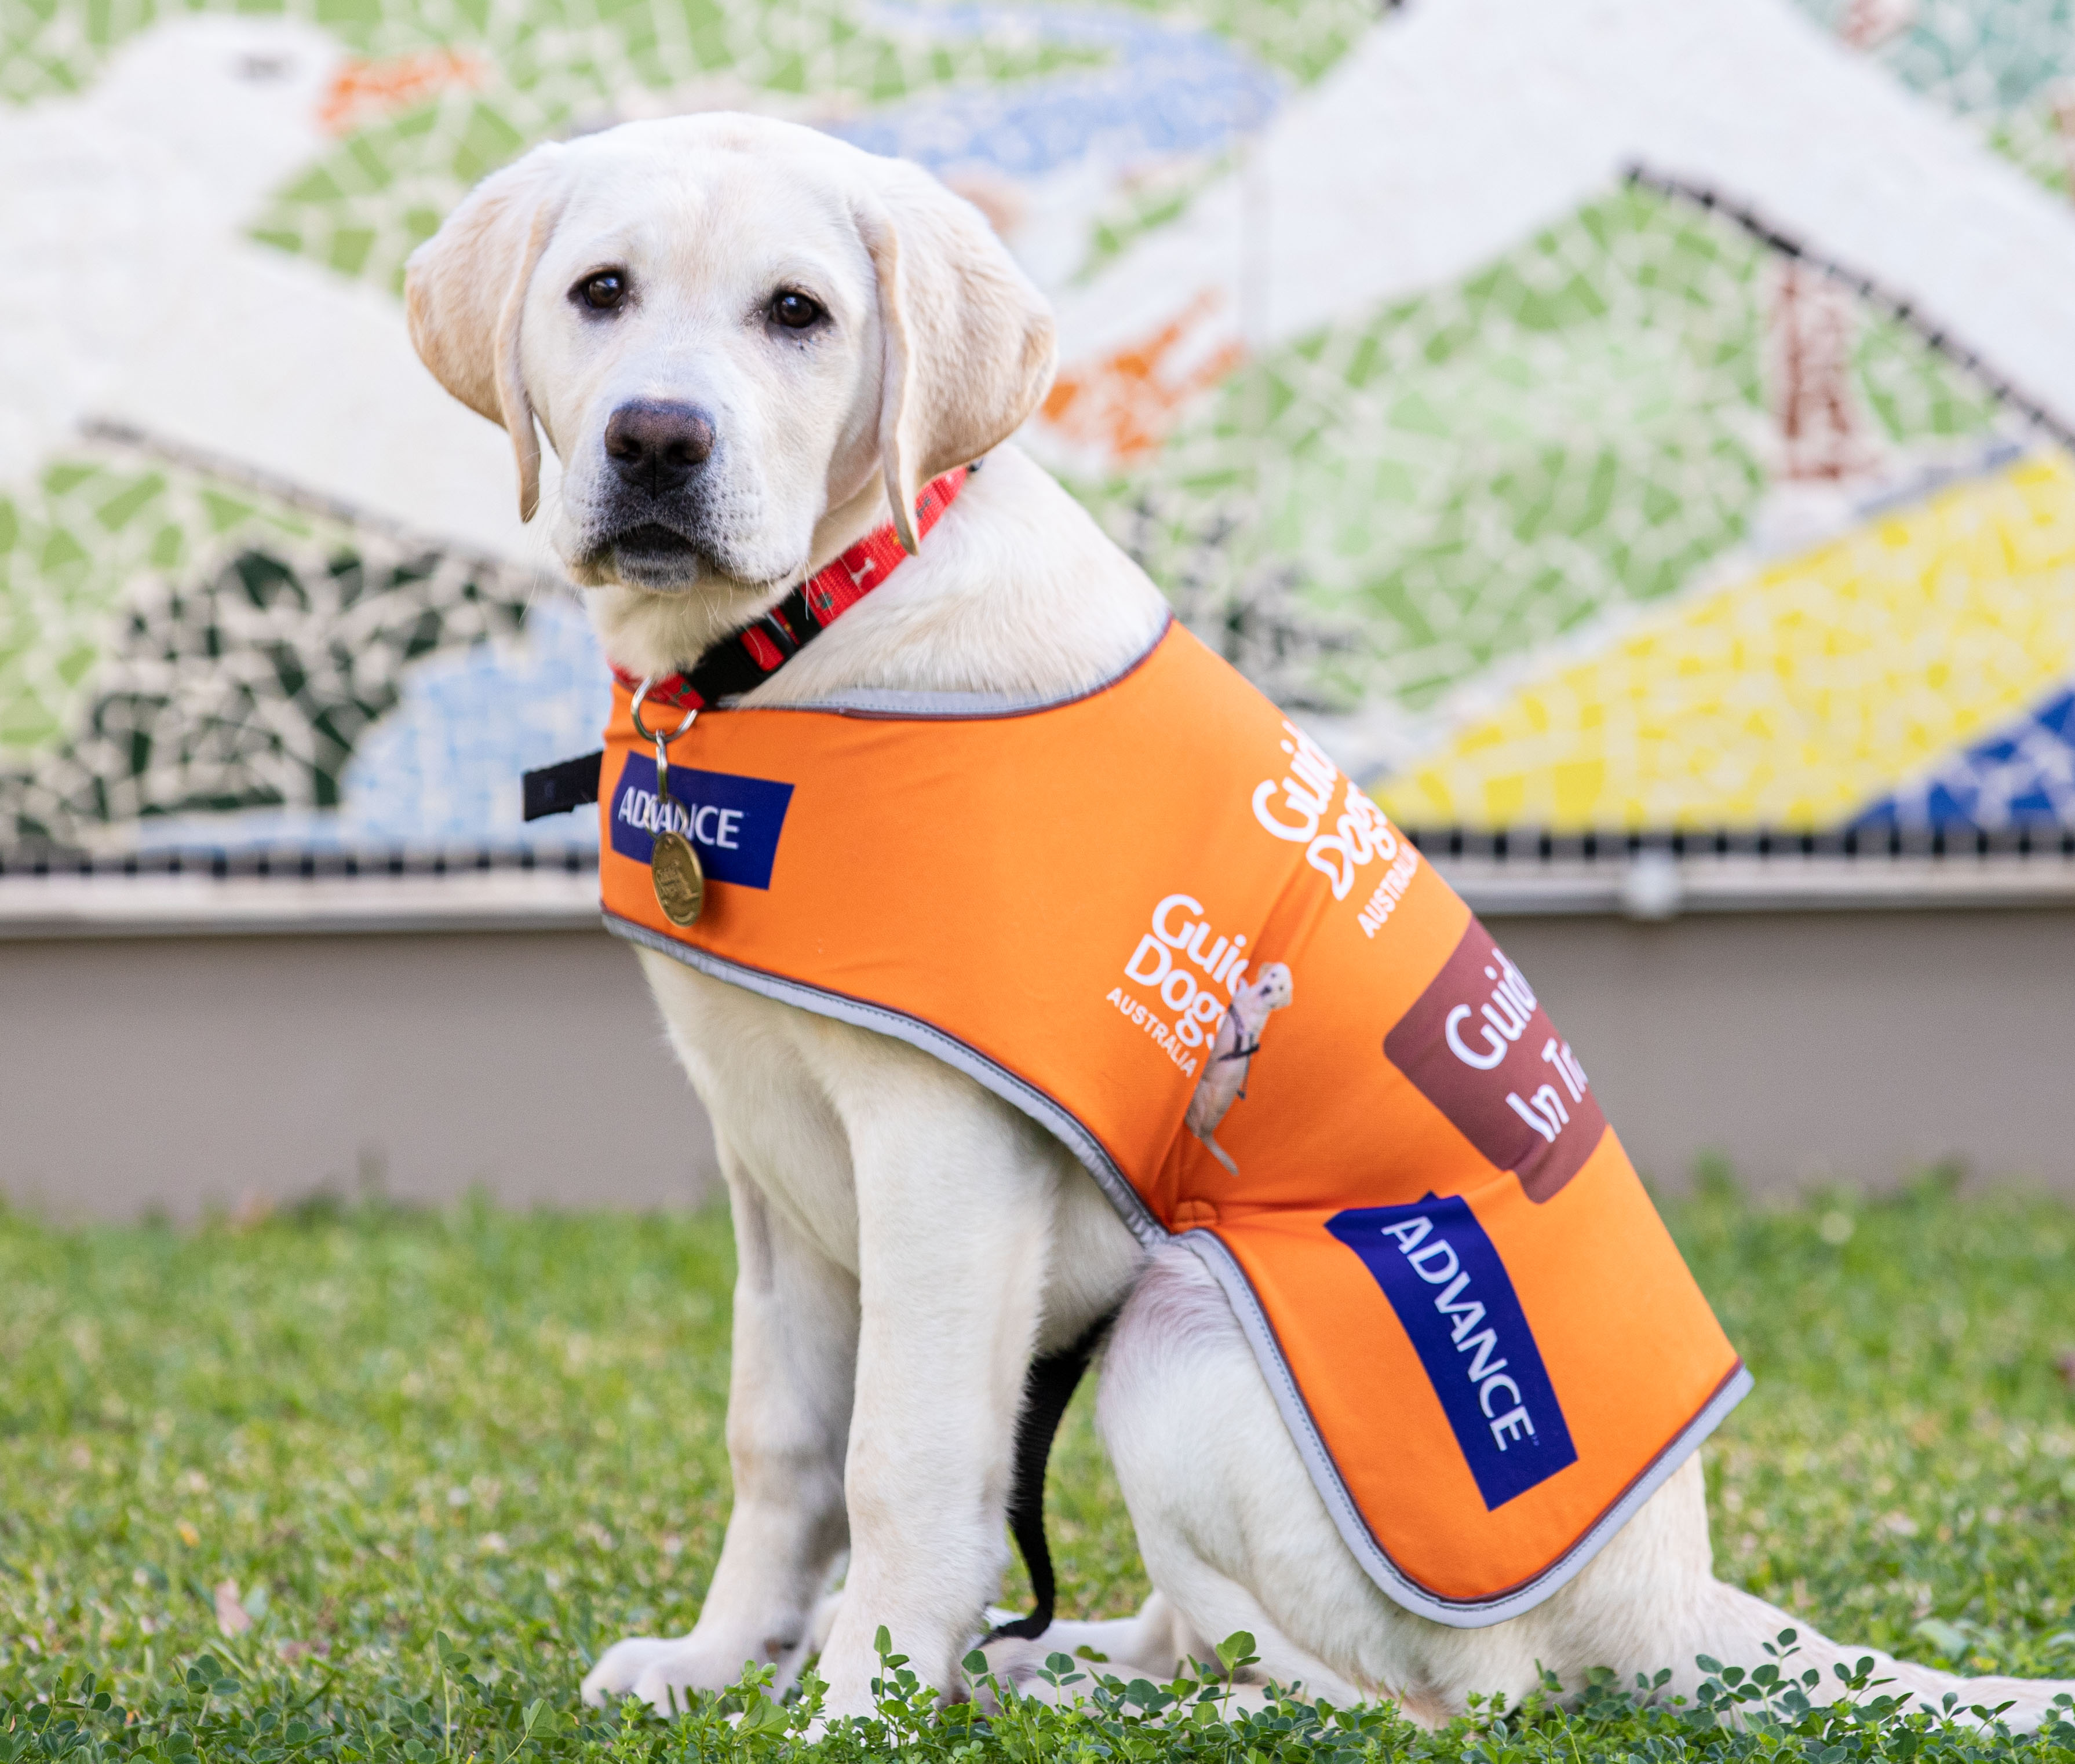 Want to help train a Guide Dog?